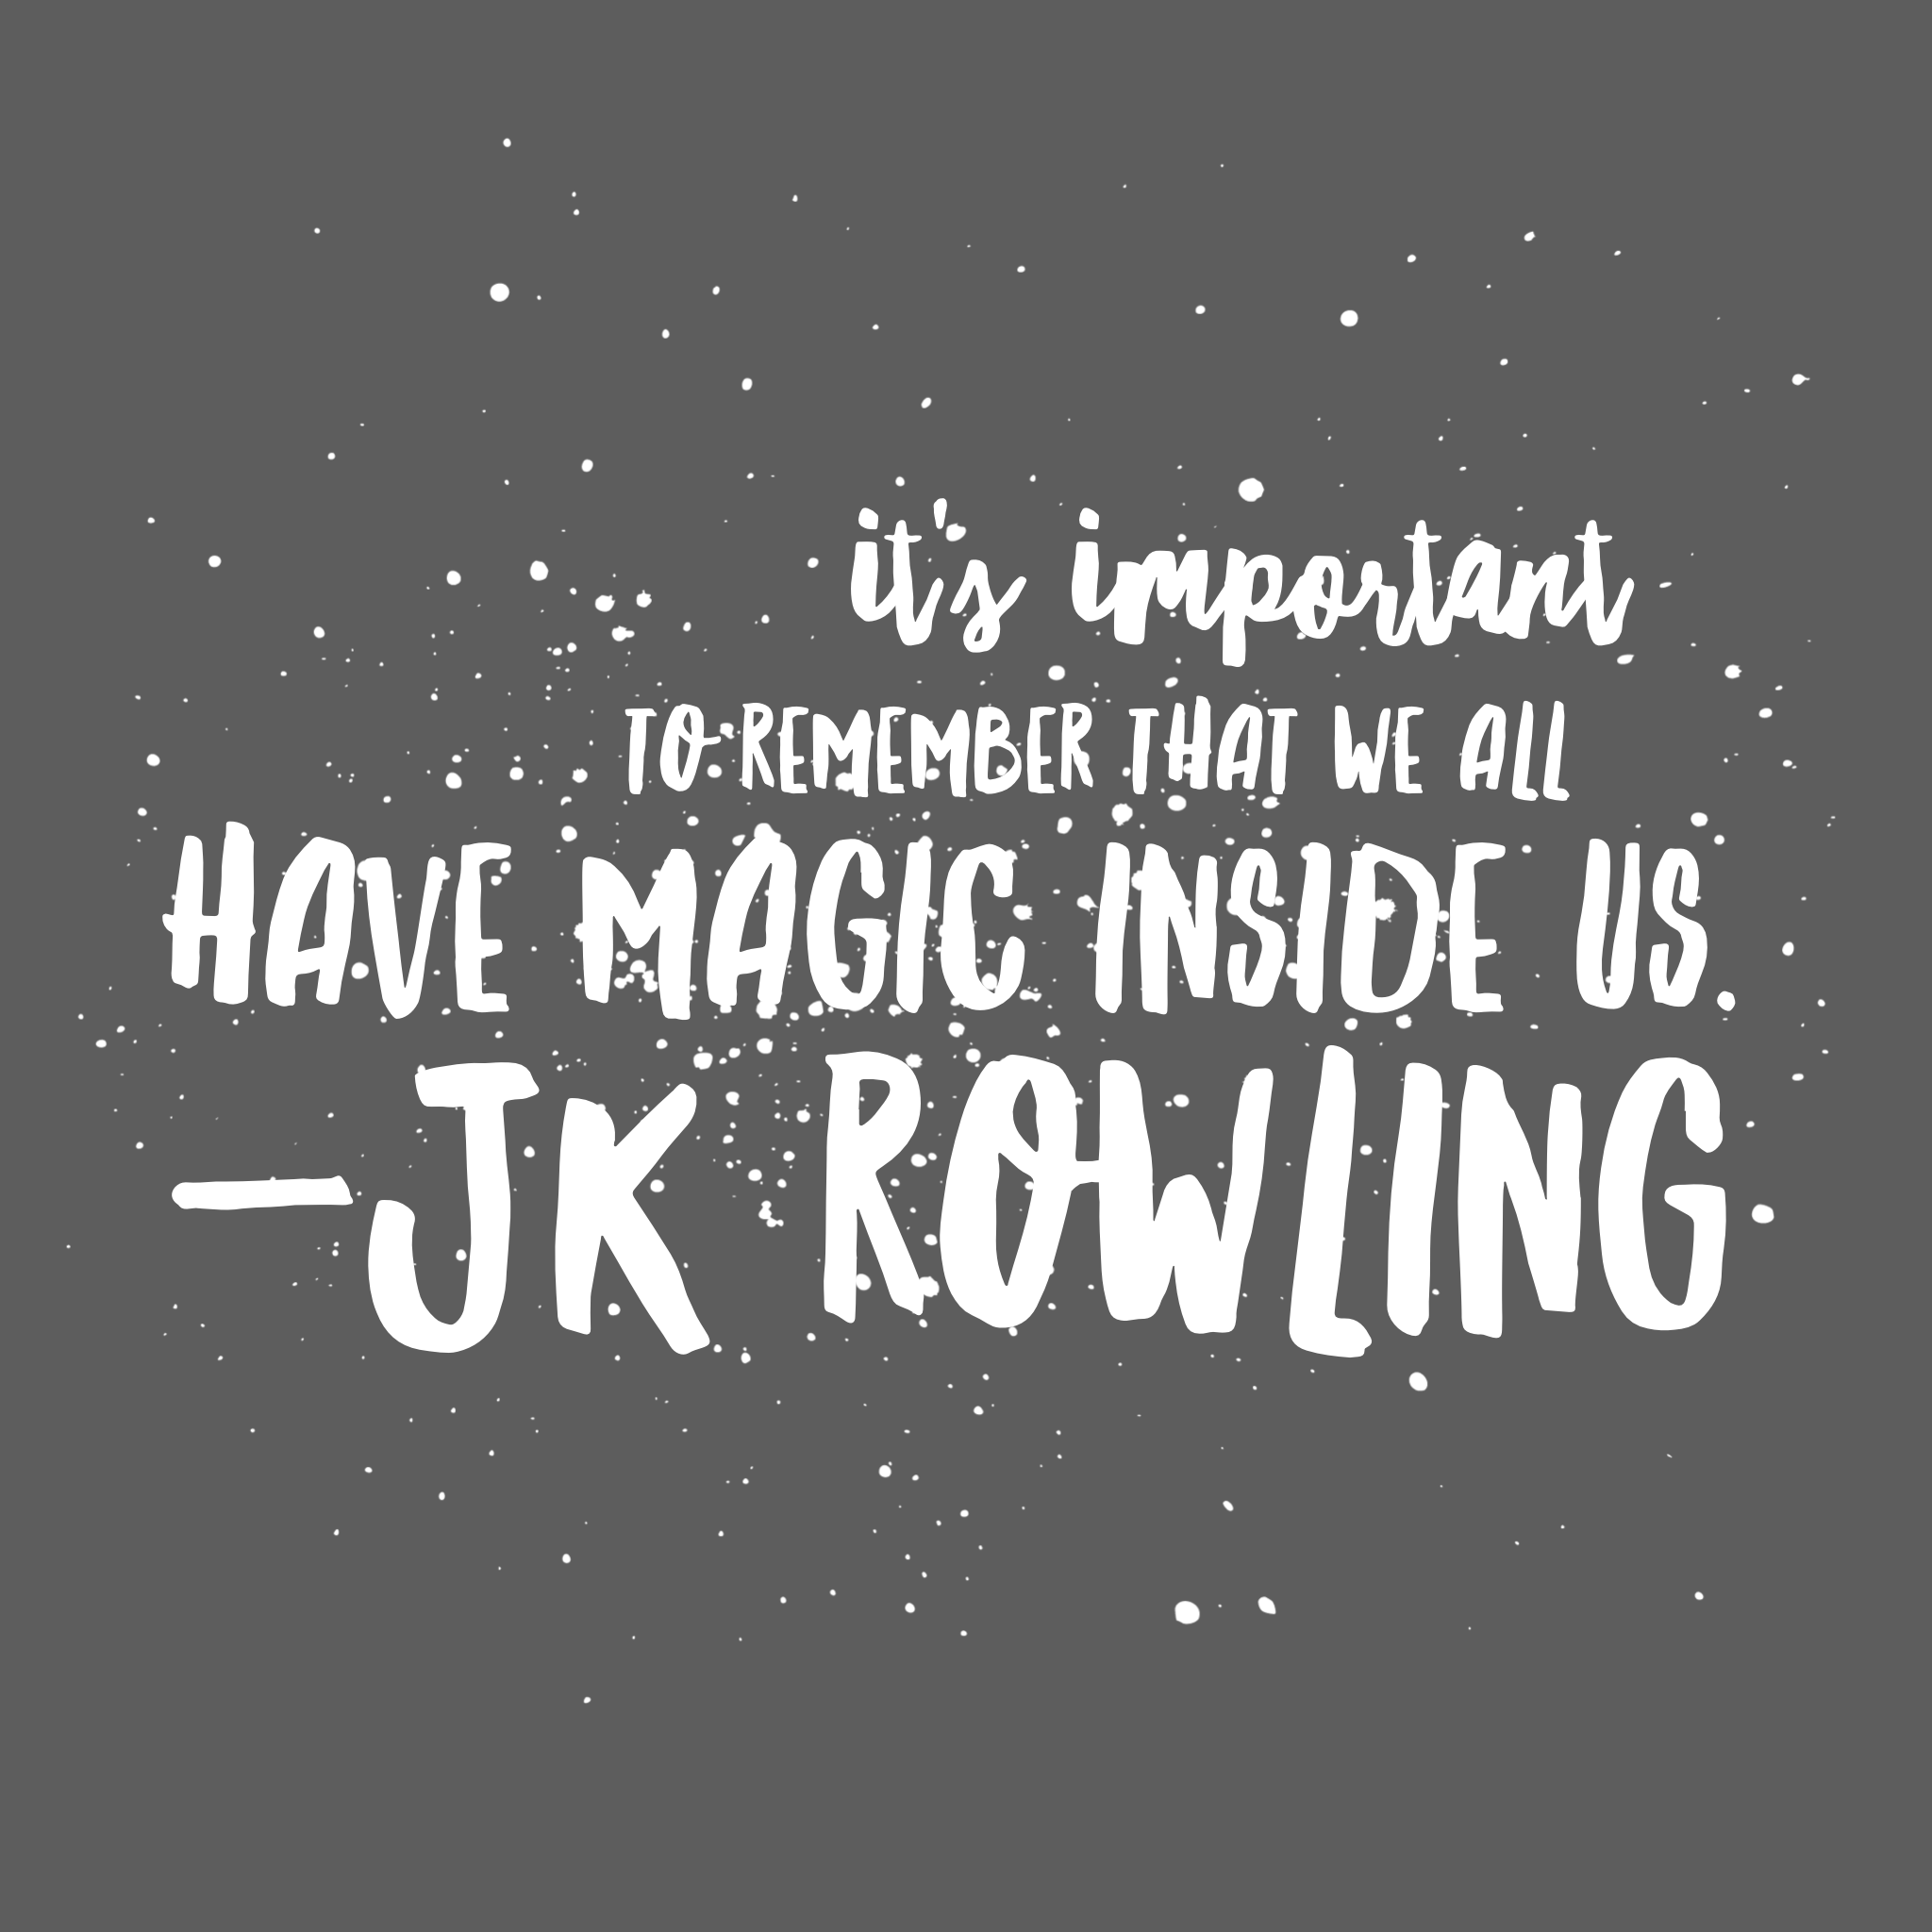 Harry Potter Love Quotes Love This Quote It's Important To Remember We All Have Magic Inside